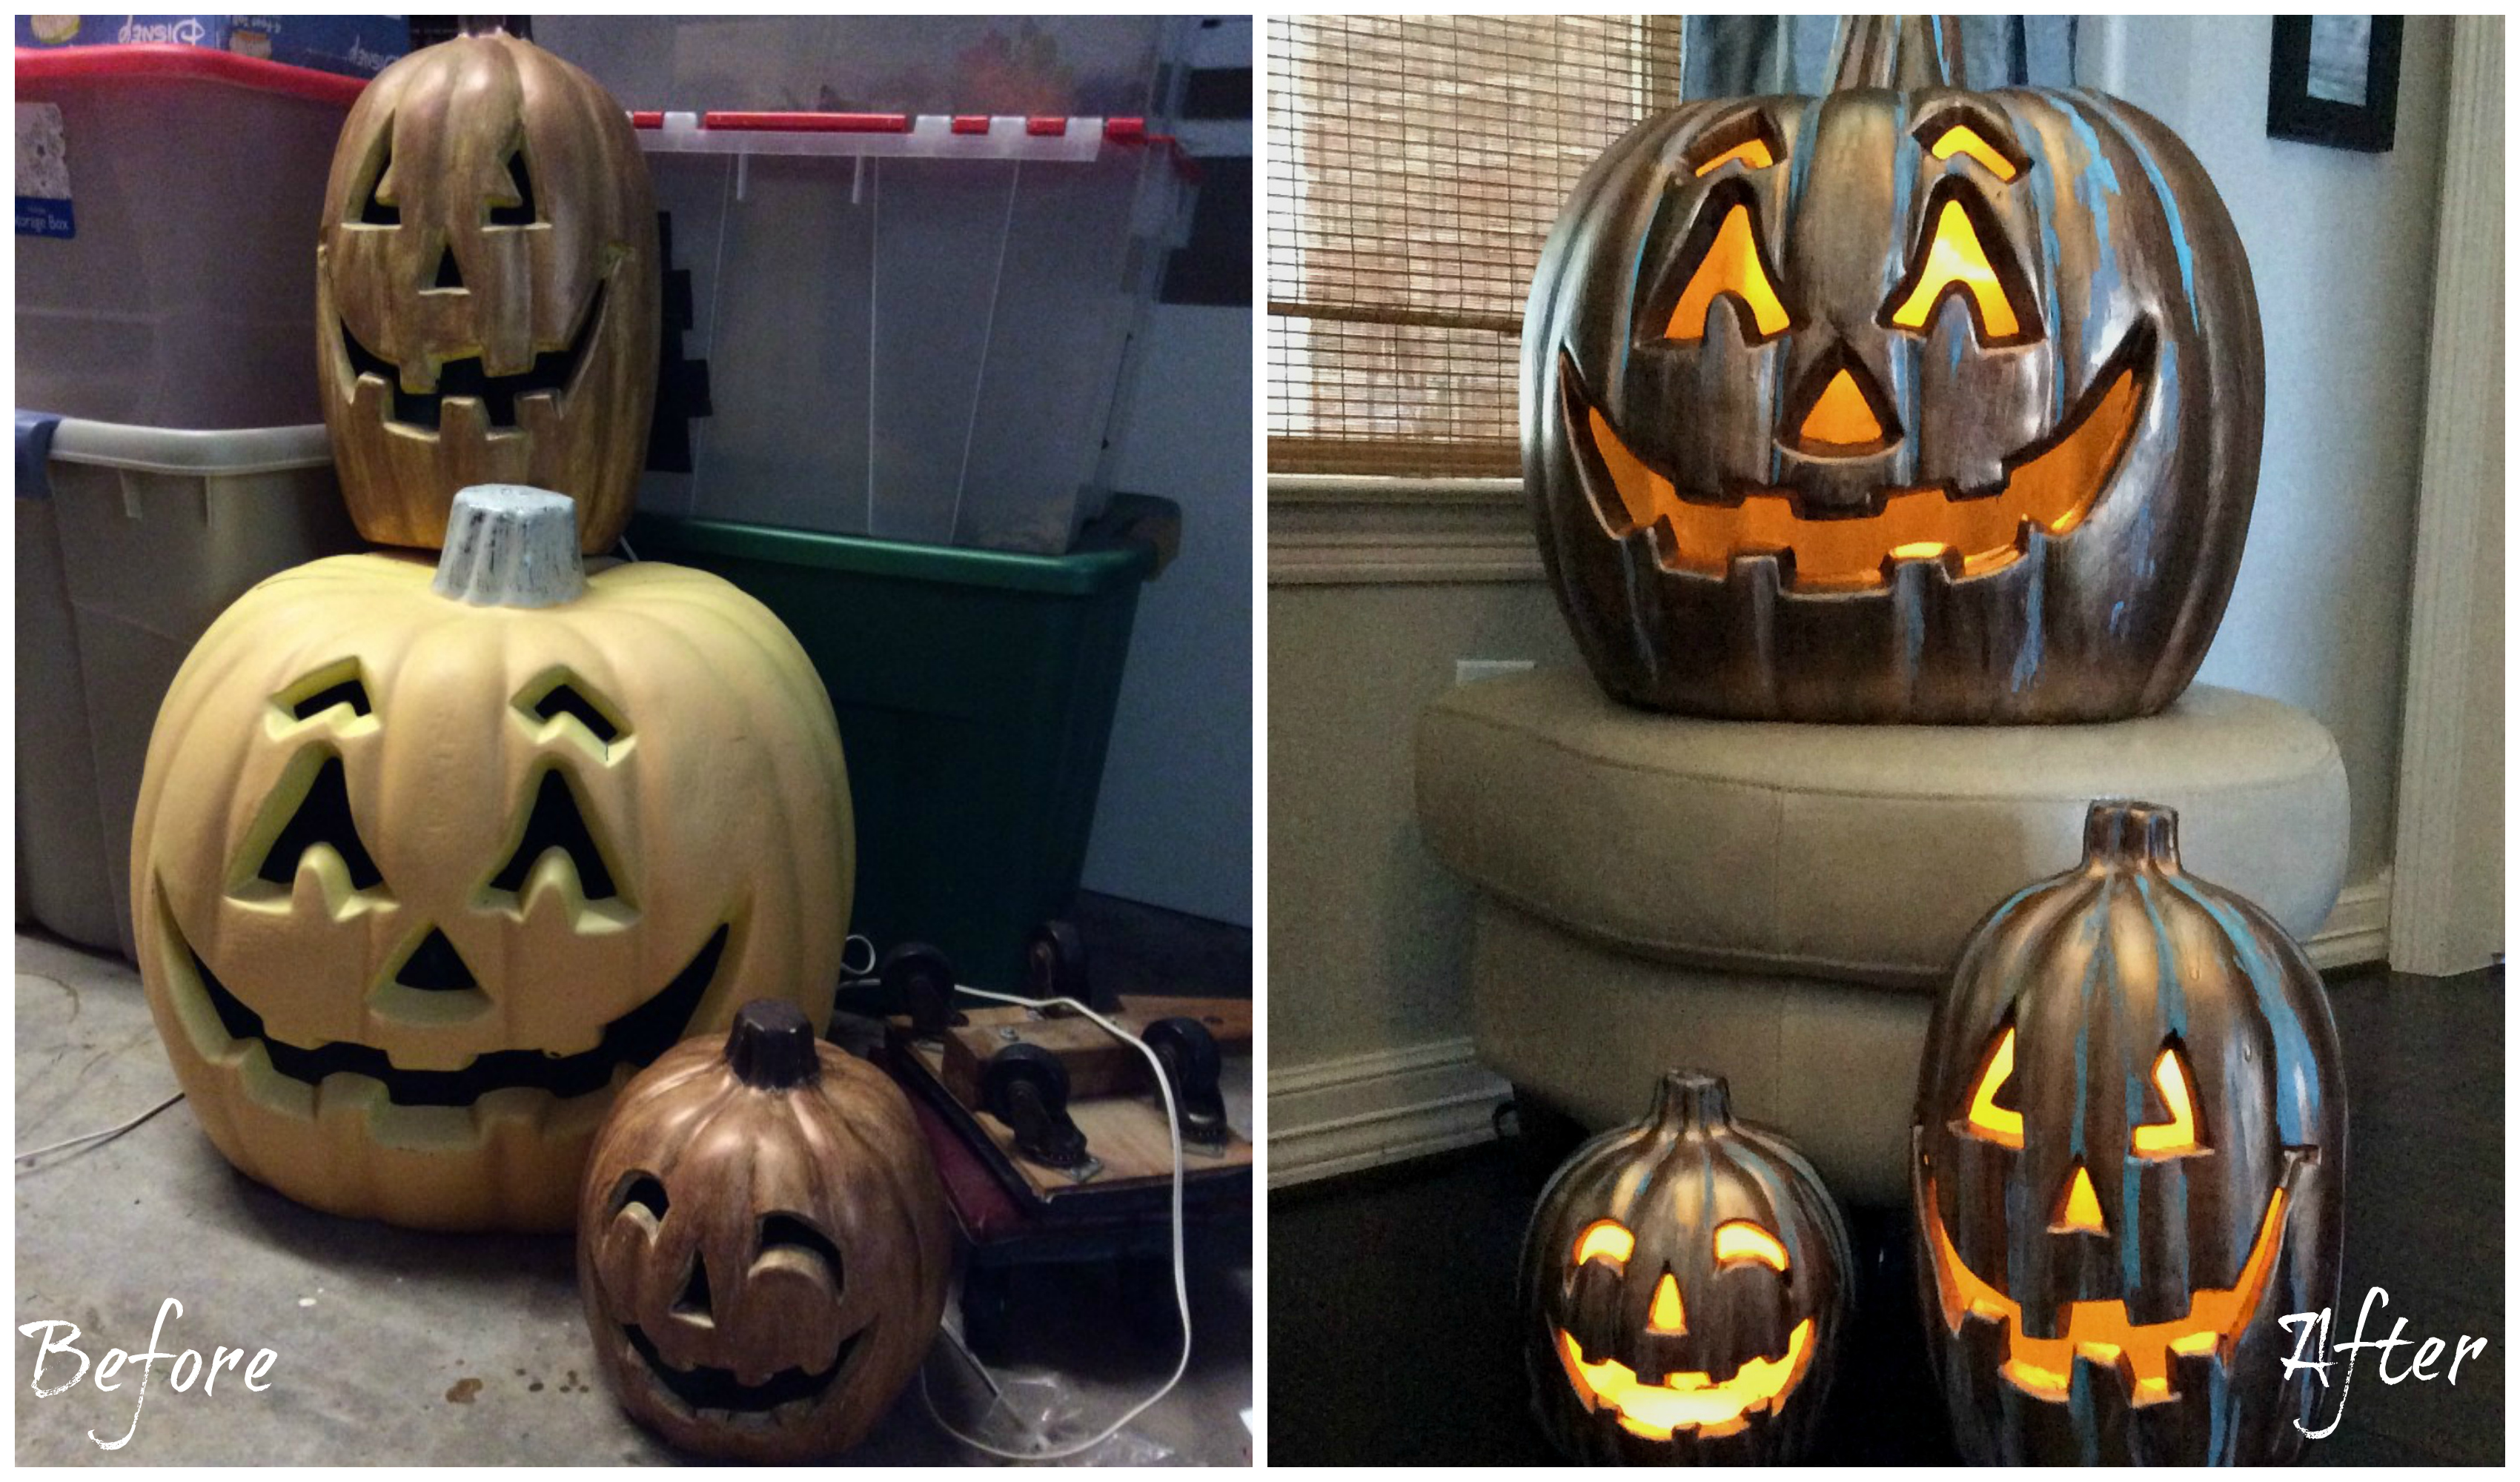 before and after collage of updating outdoor jack o' lanterns